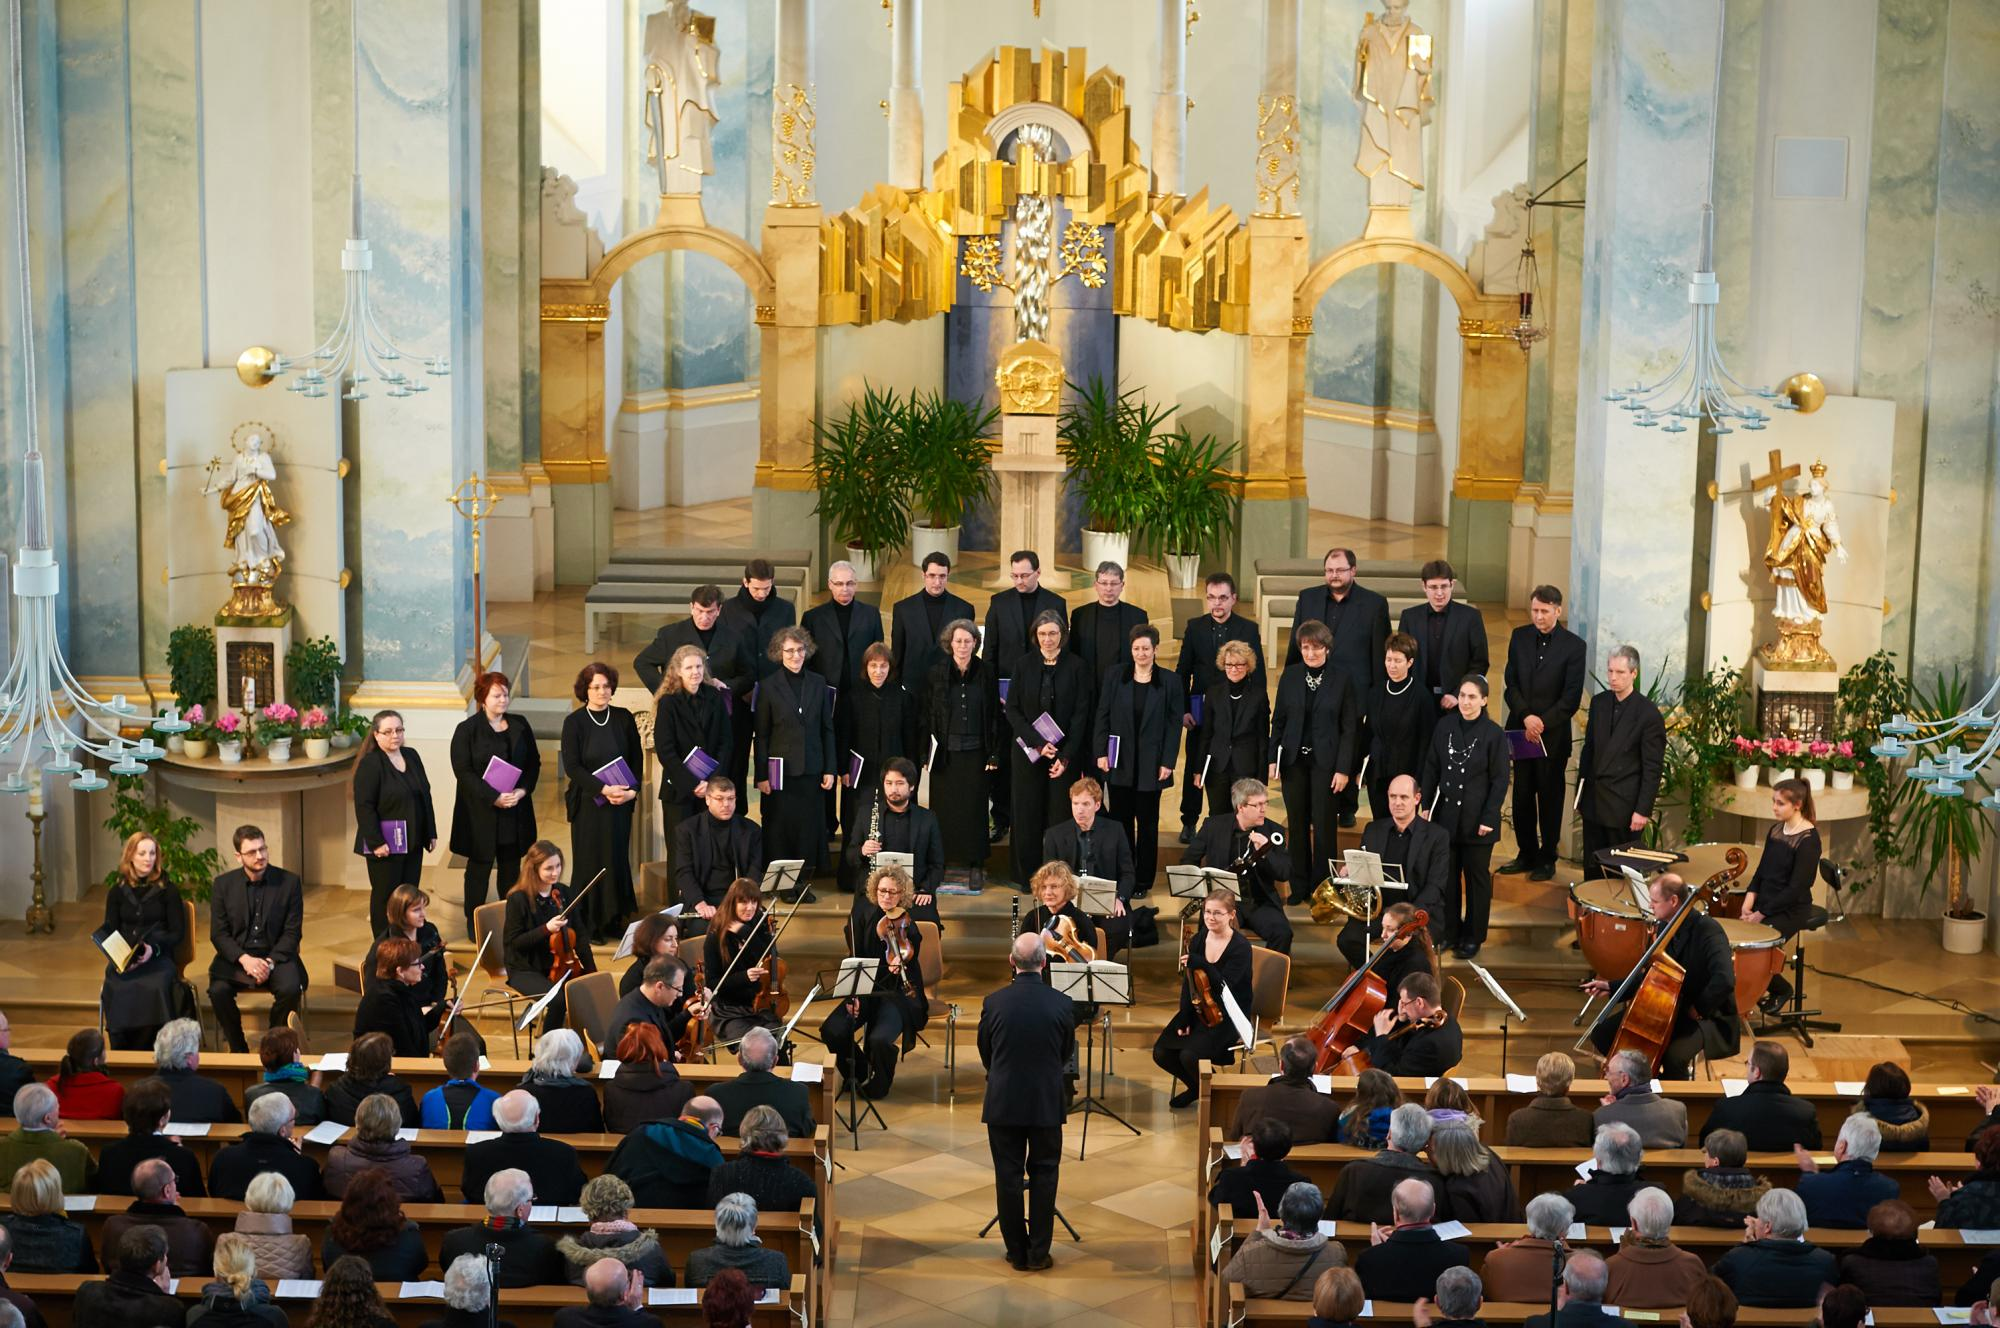 Kammerchor songcraeft-art of singing, 24.02., Foto Carolin Aberle.jpg